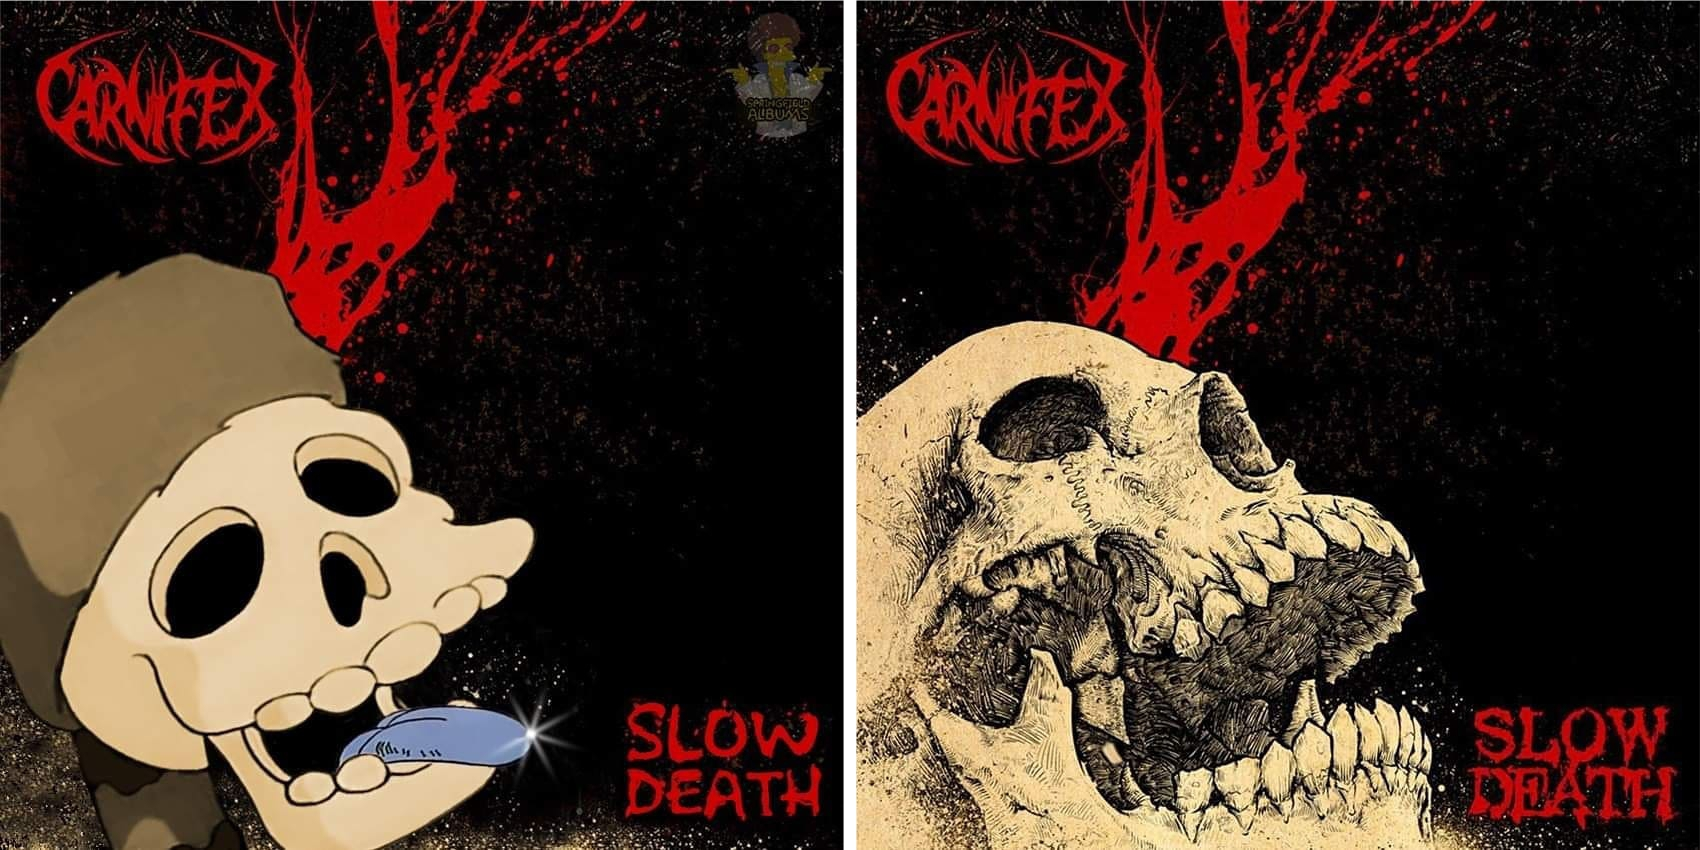 Carnifex - Slow Death (2016)